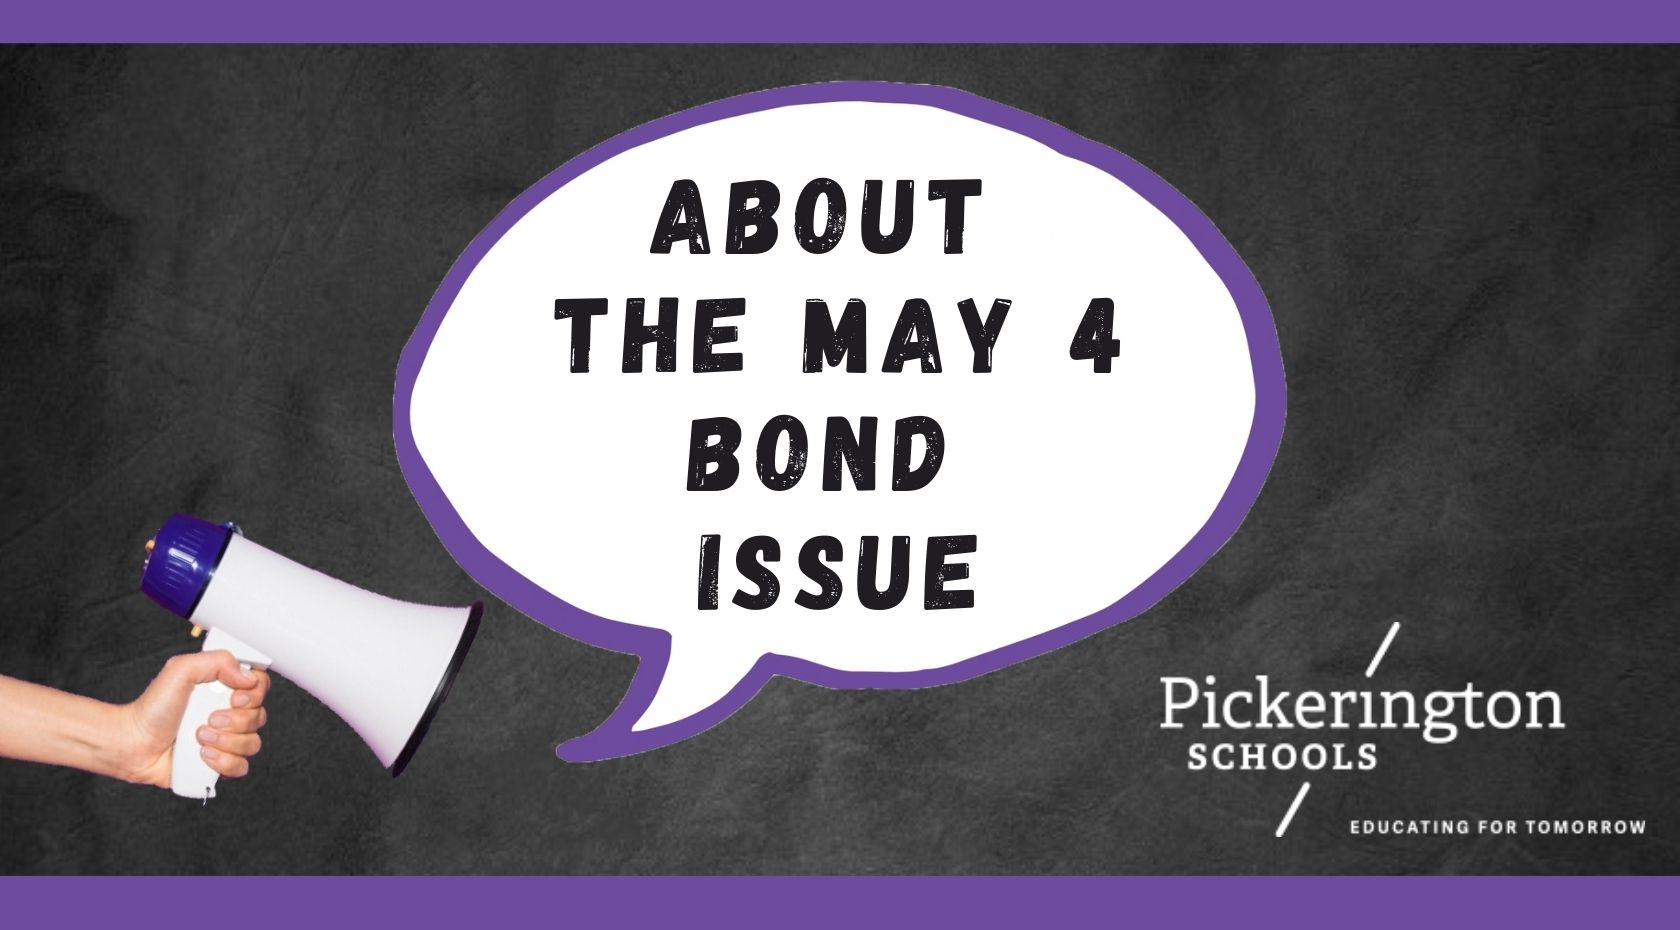 About the May 4 Bond Issue image